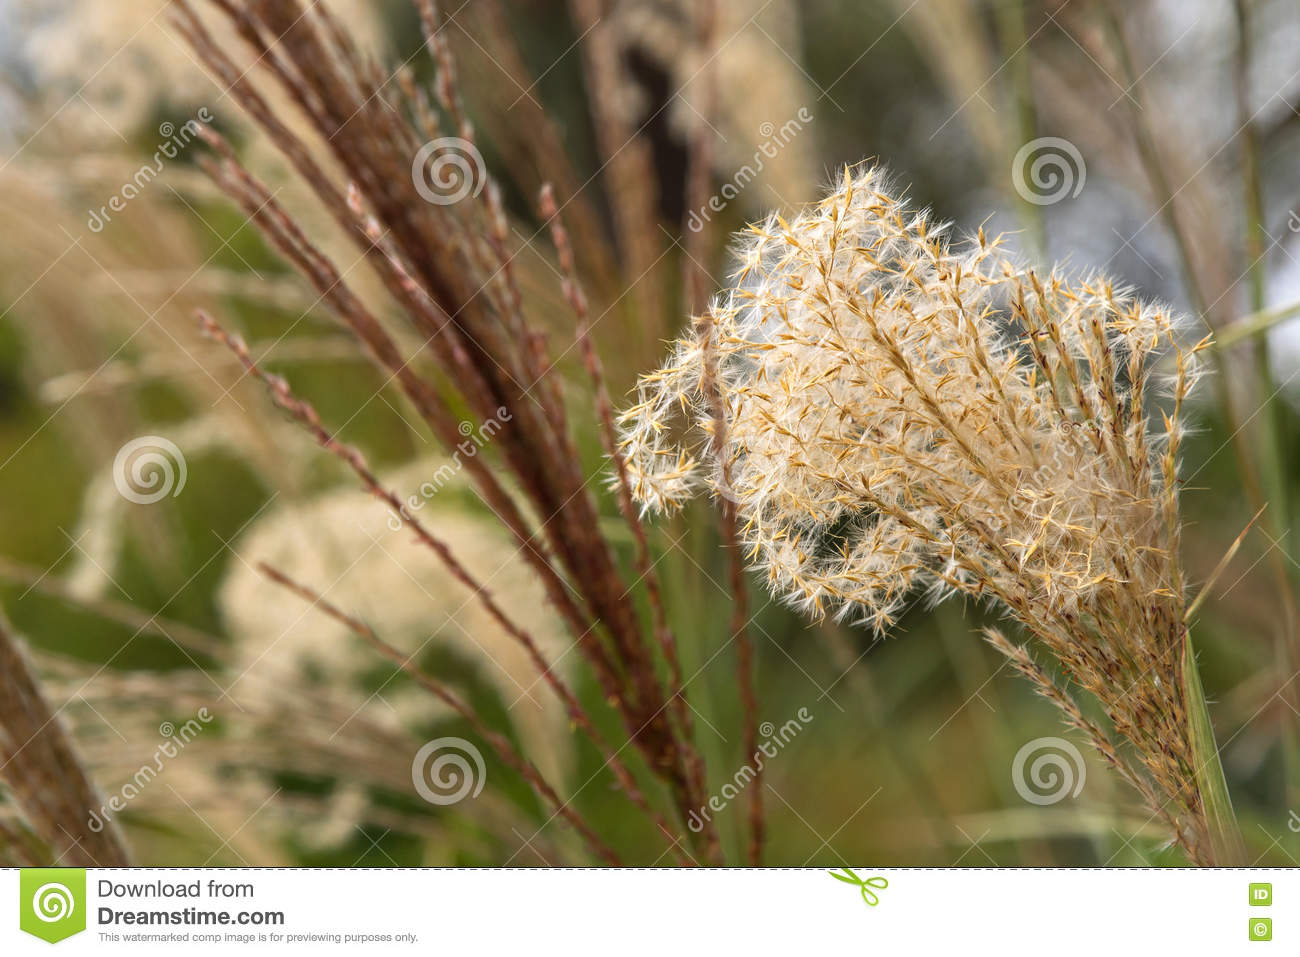 Flower heads of ornamental grass miscanthus sinensis growing i royalty free stock photo workwithnaturefo